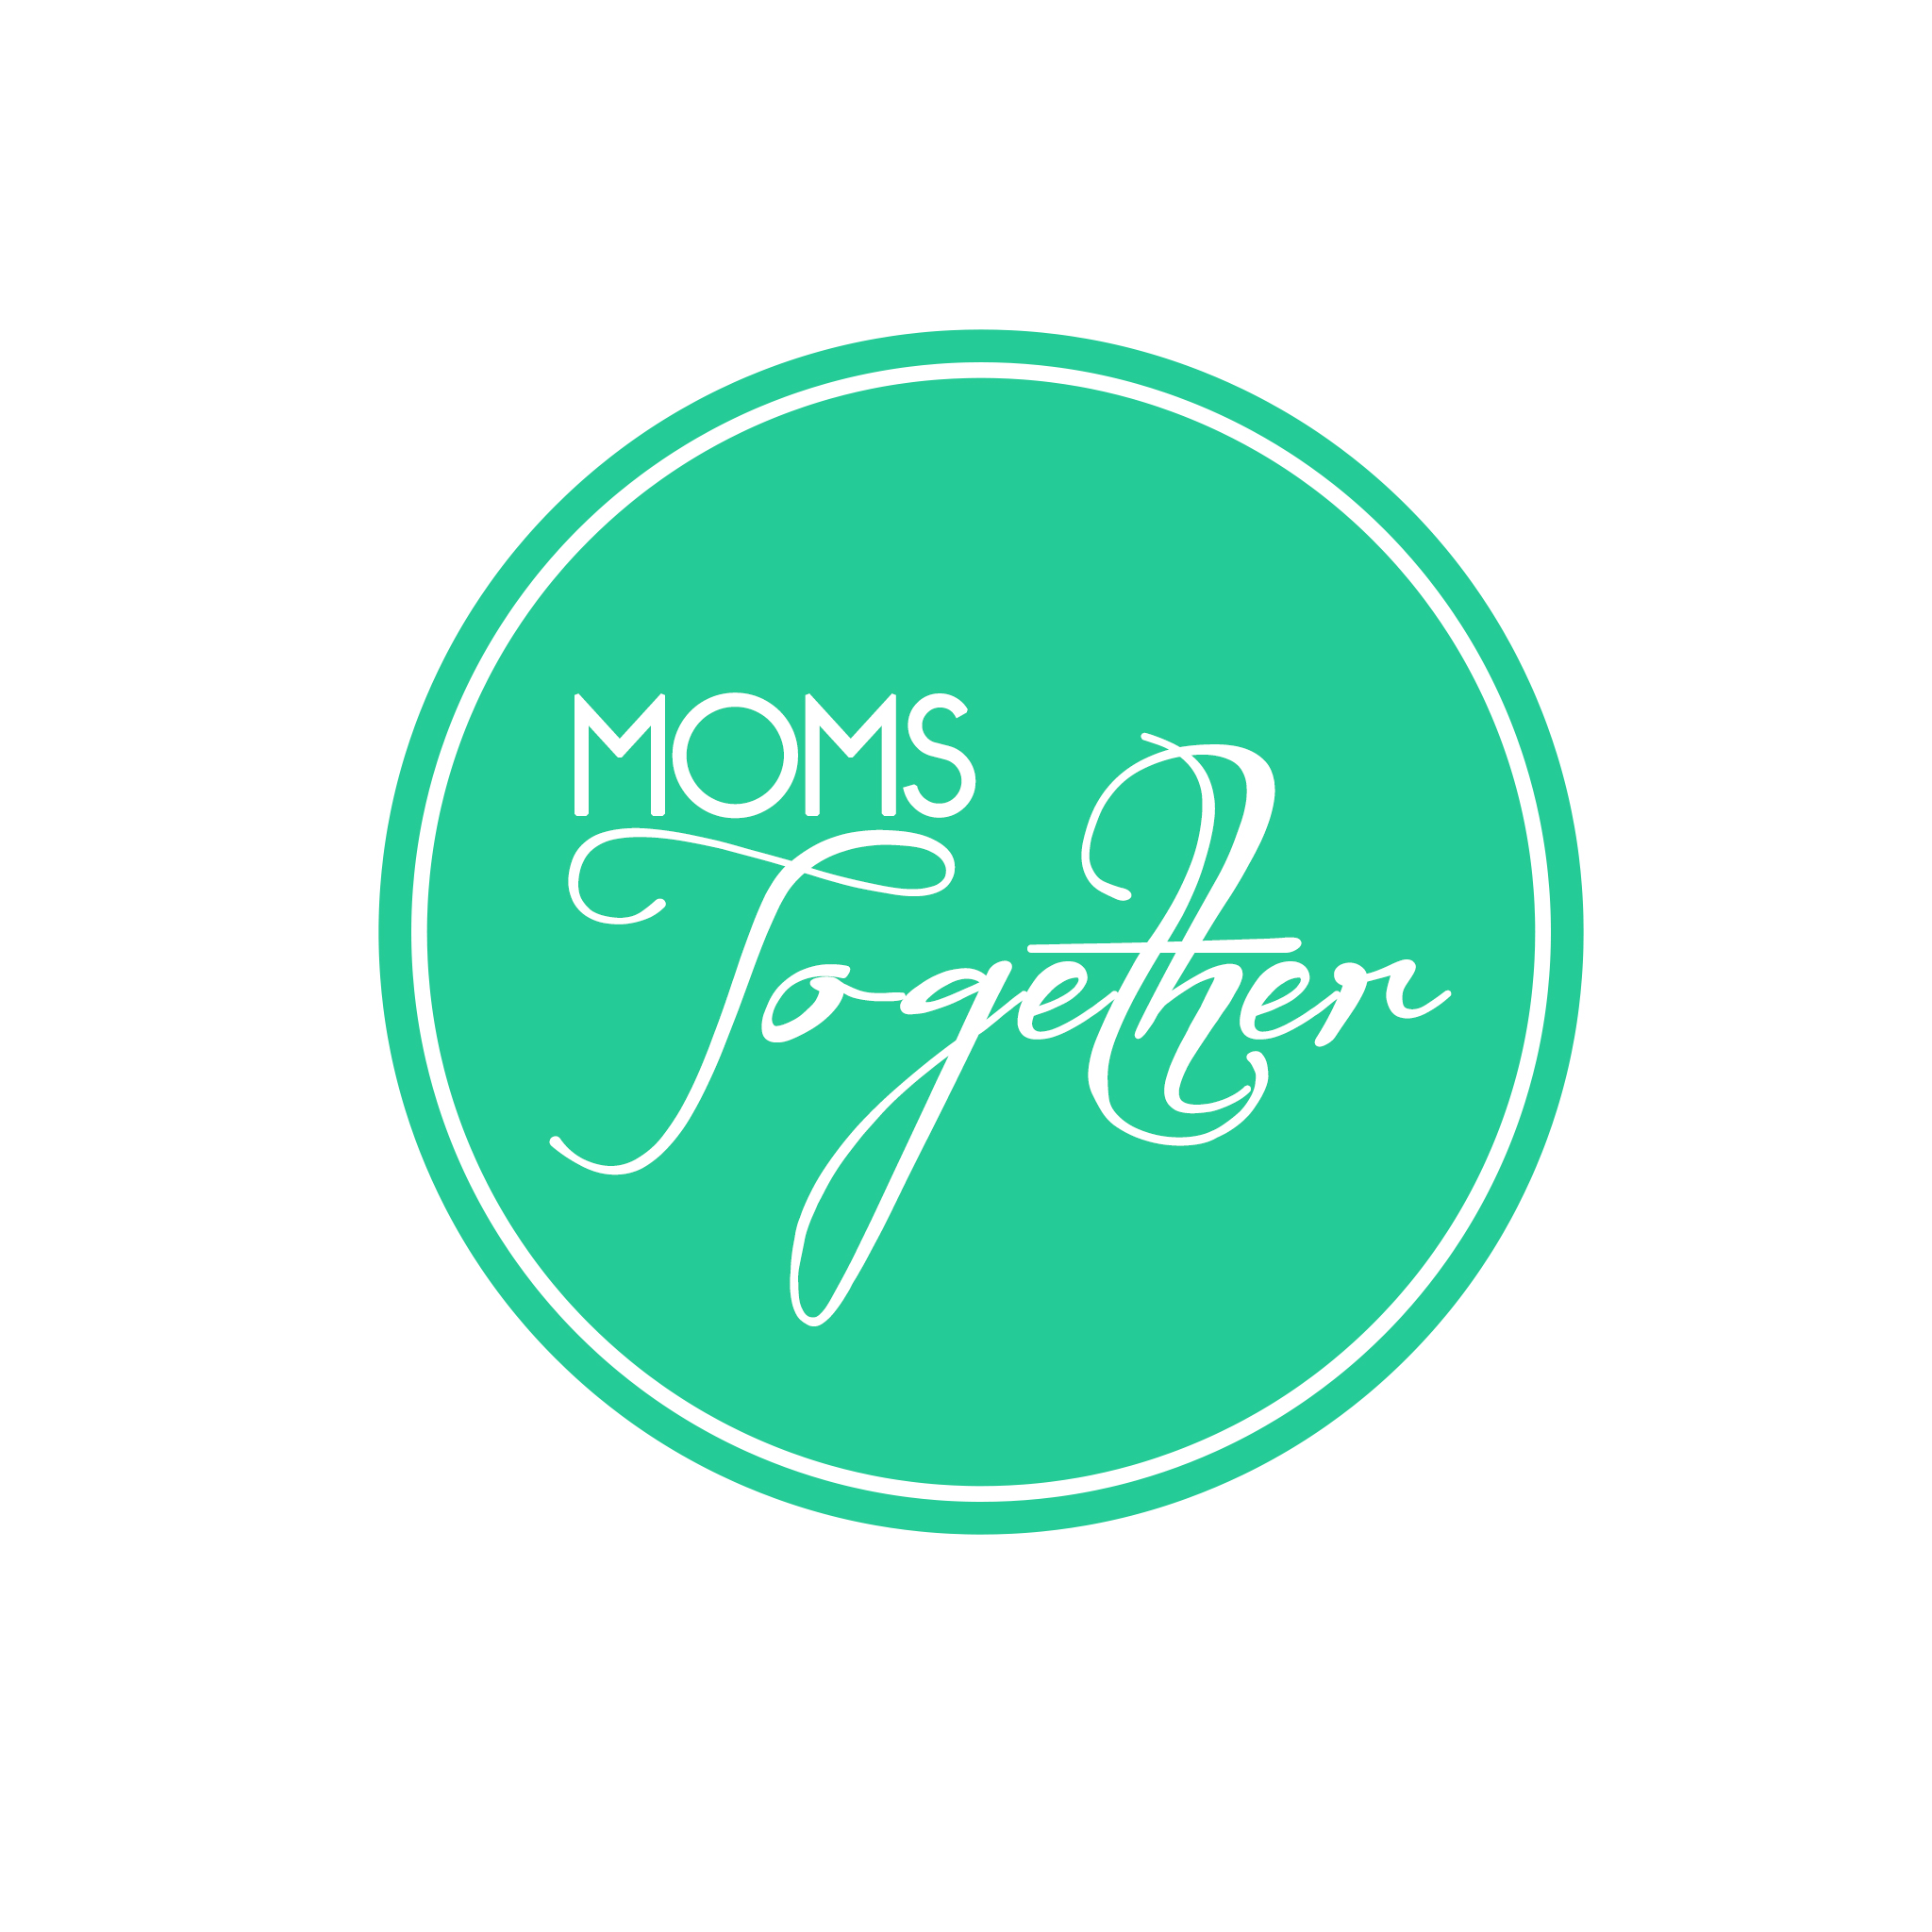 Momstogetherlogofinalturquoise